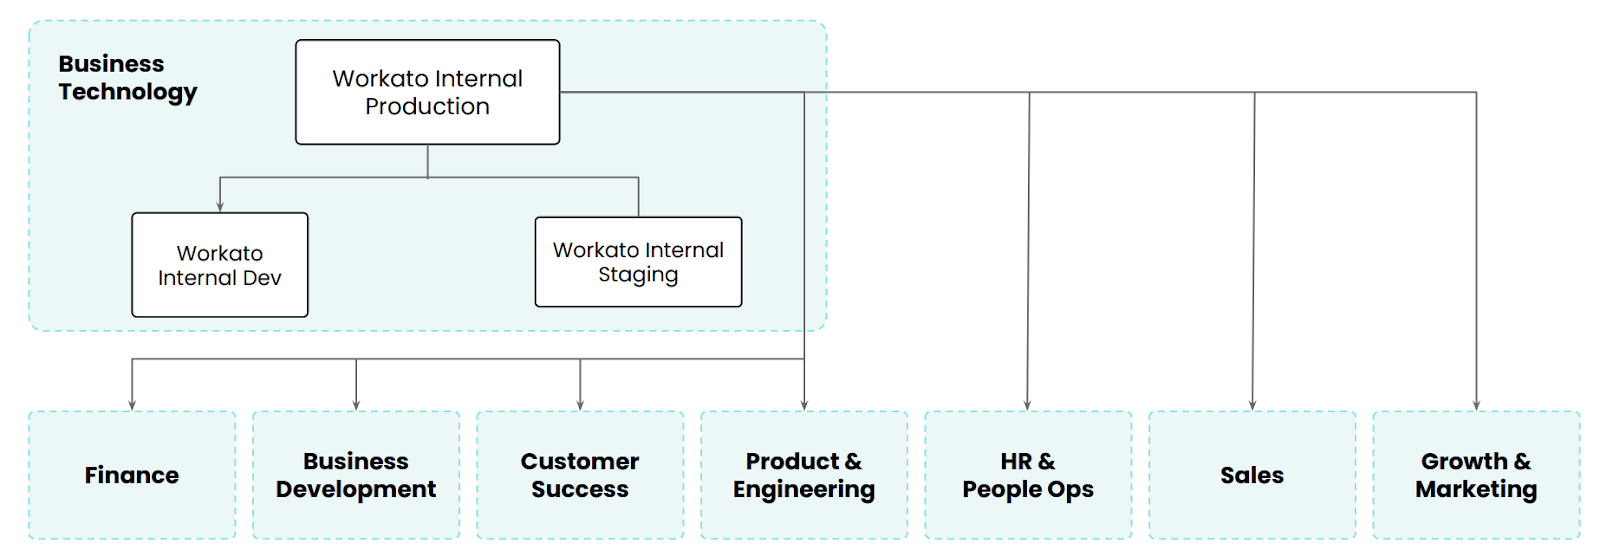 How Workato operates its federated workspaces model